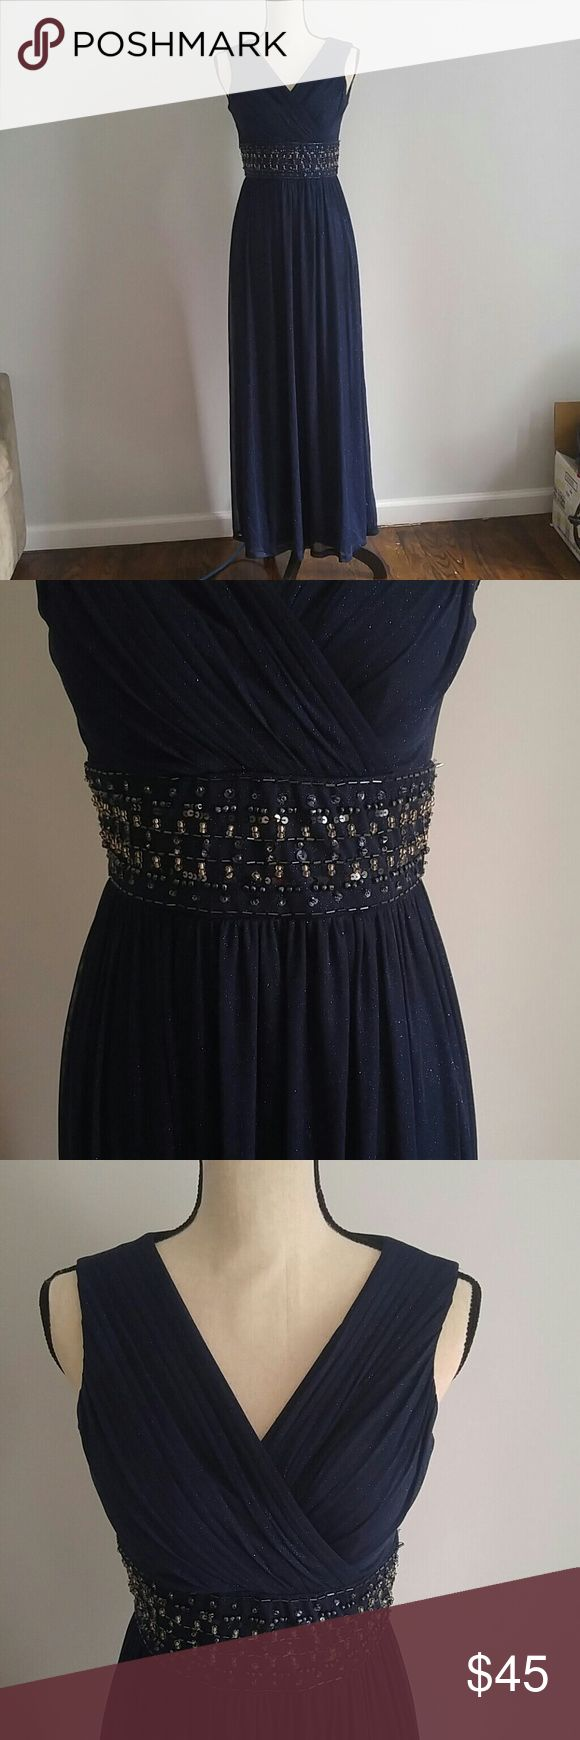 """Bridesmaid prom mother of bride dress Size 4 petite dress that is a sparkly navy blue with a beaded band around the waist. Bought from Macy's. I got this dress when i was a bridesmaid and will probably never wear it again. It has not been altered and is in good condition! Perfect for a future bridesmaid, conservative prom dress, mother of the bride, or a ball. It is very pretty I have since lost weight so it not longer fits! Make me an offer or add to a bundle! :) * 52 inches / 4'4"""" in…"""